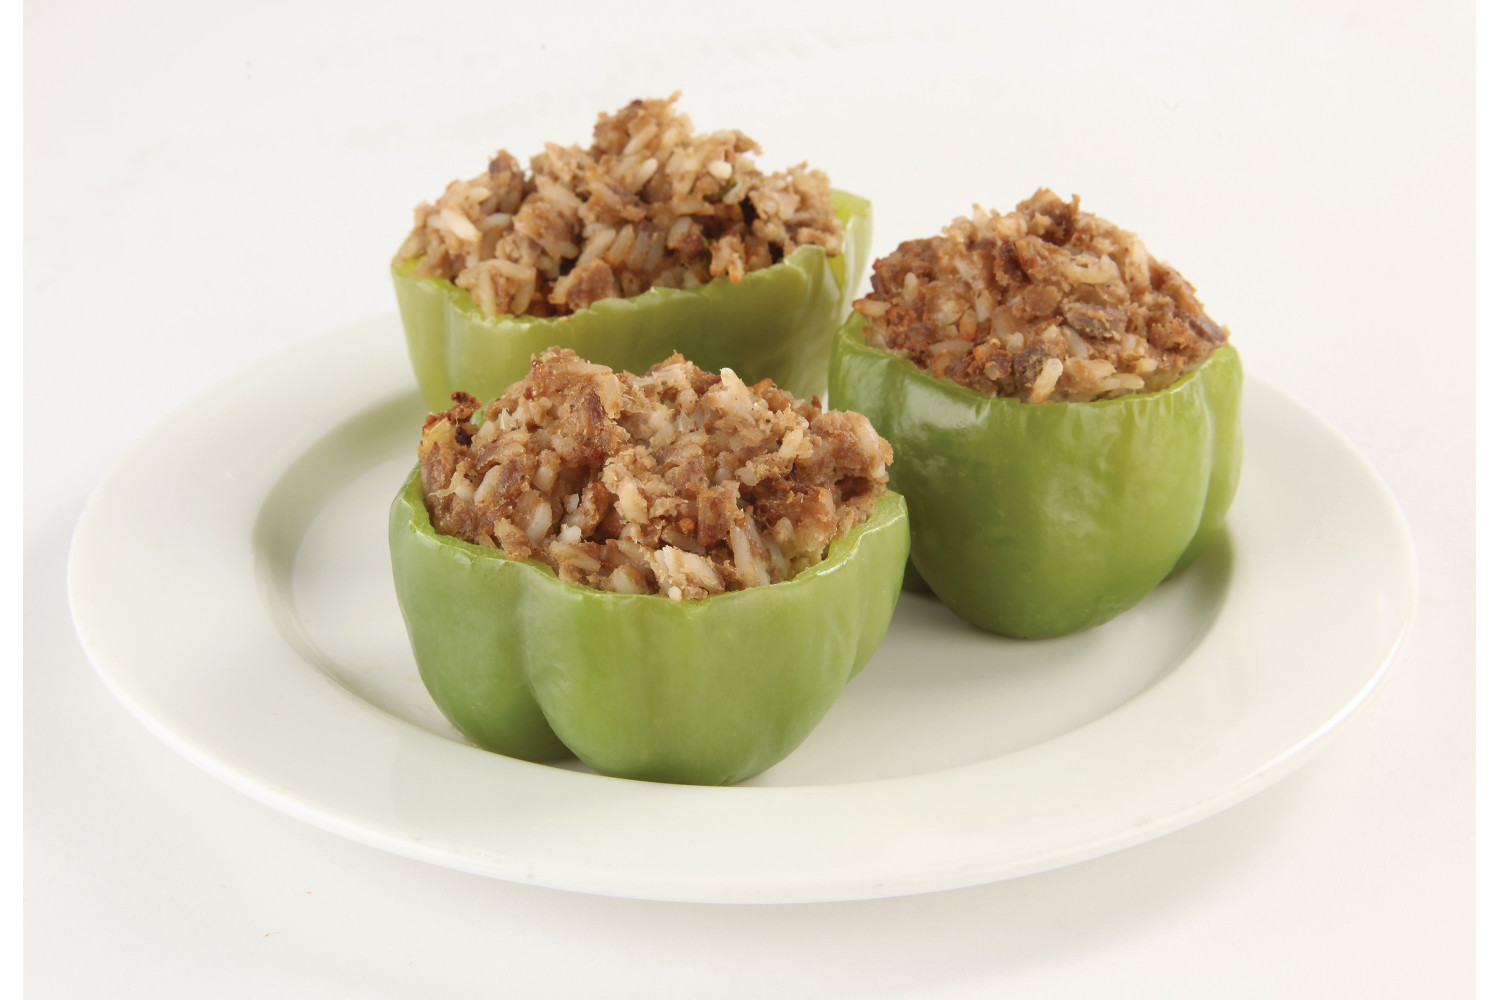 Stuffed Green Peppers - Dry Pack, Bulk, 48 to case